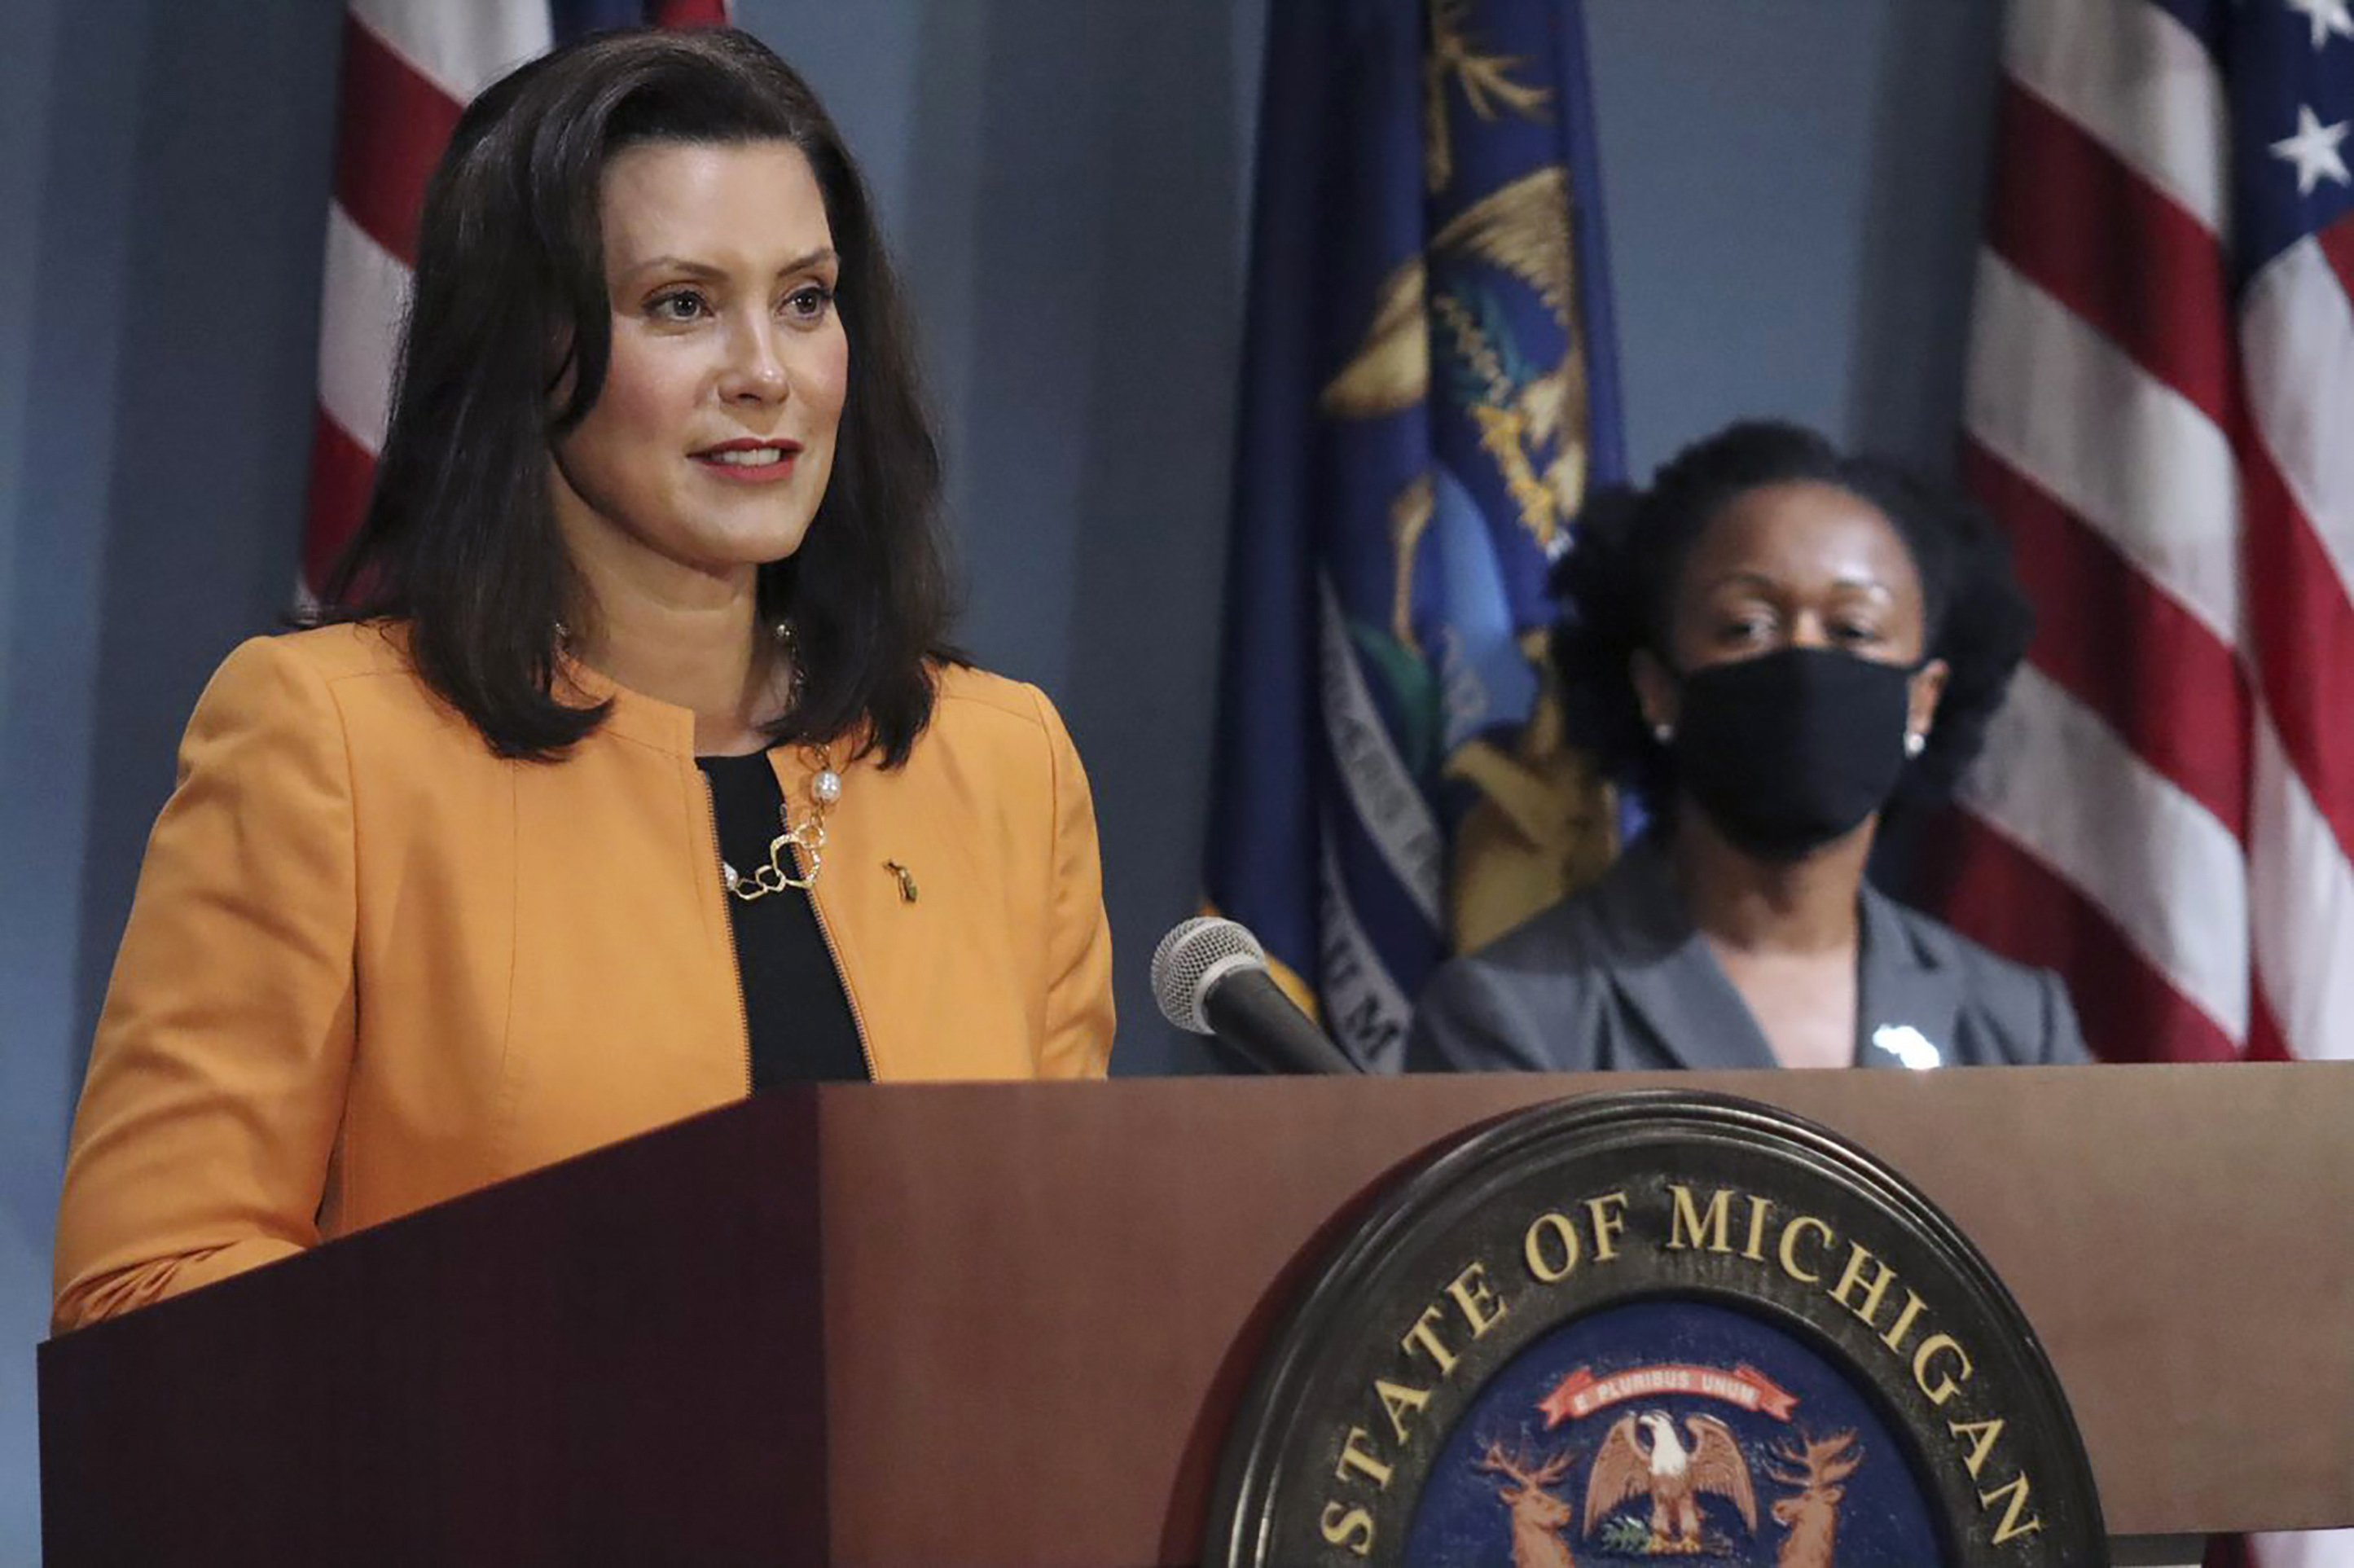 Whitmer offers 'carbon-neutral' climate plan for Michigan